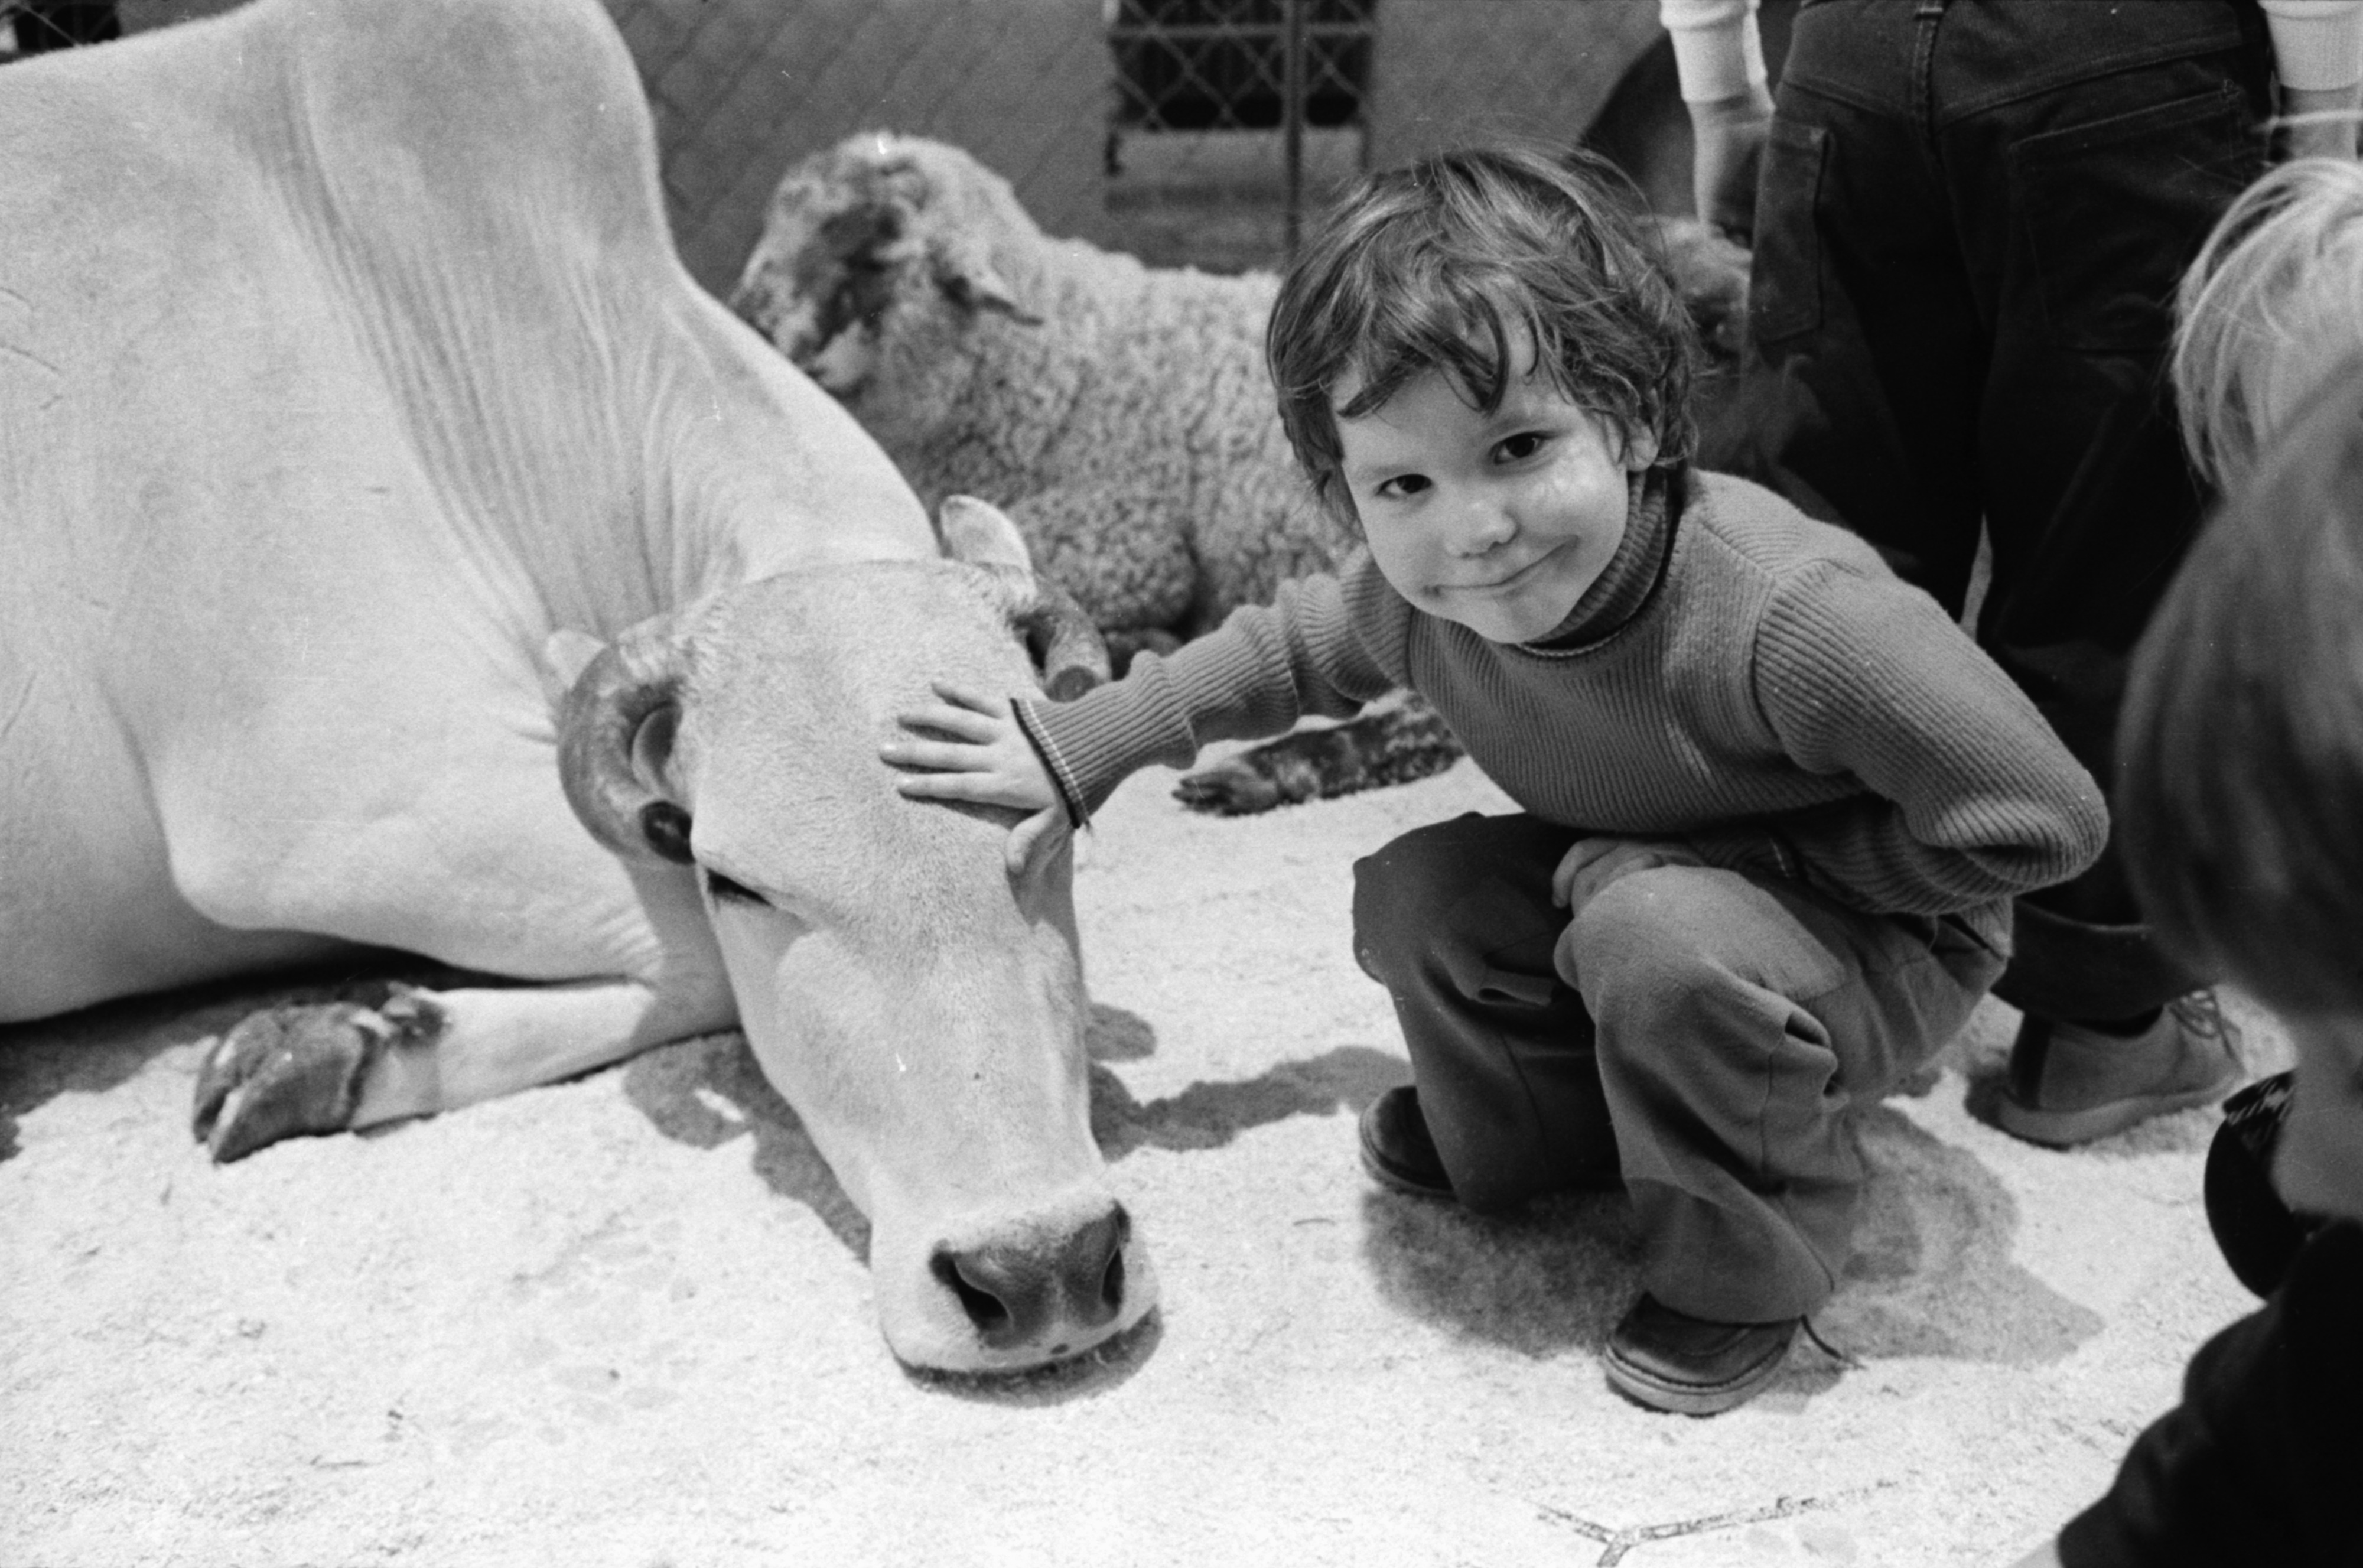 Matt Newman Pets a Cow at Jetts Petting Zoo at the Briarwood Mall, March 1976 image